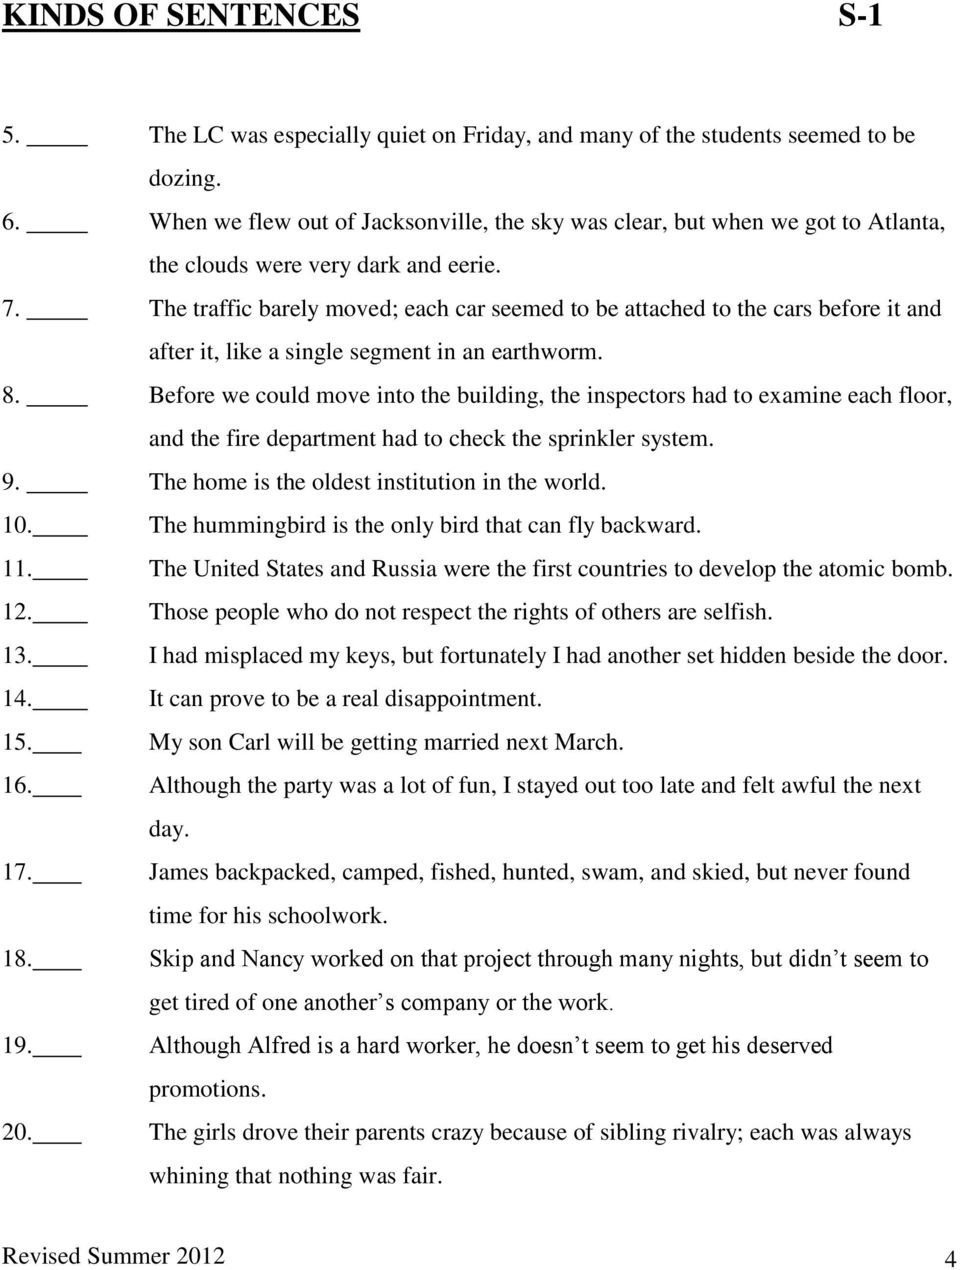 Kinds Of Sentences S1  Pdf Together With Simple Compound And Complex Sentences Worksheet Pdf